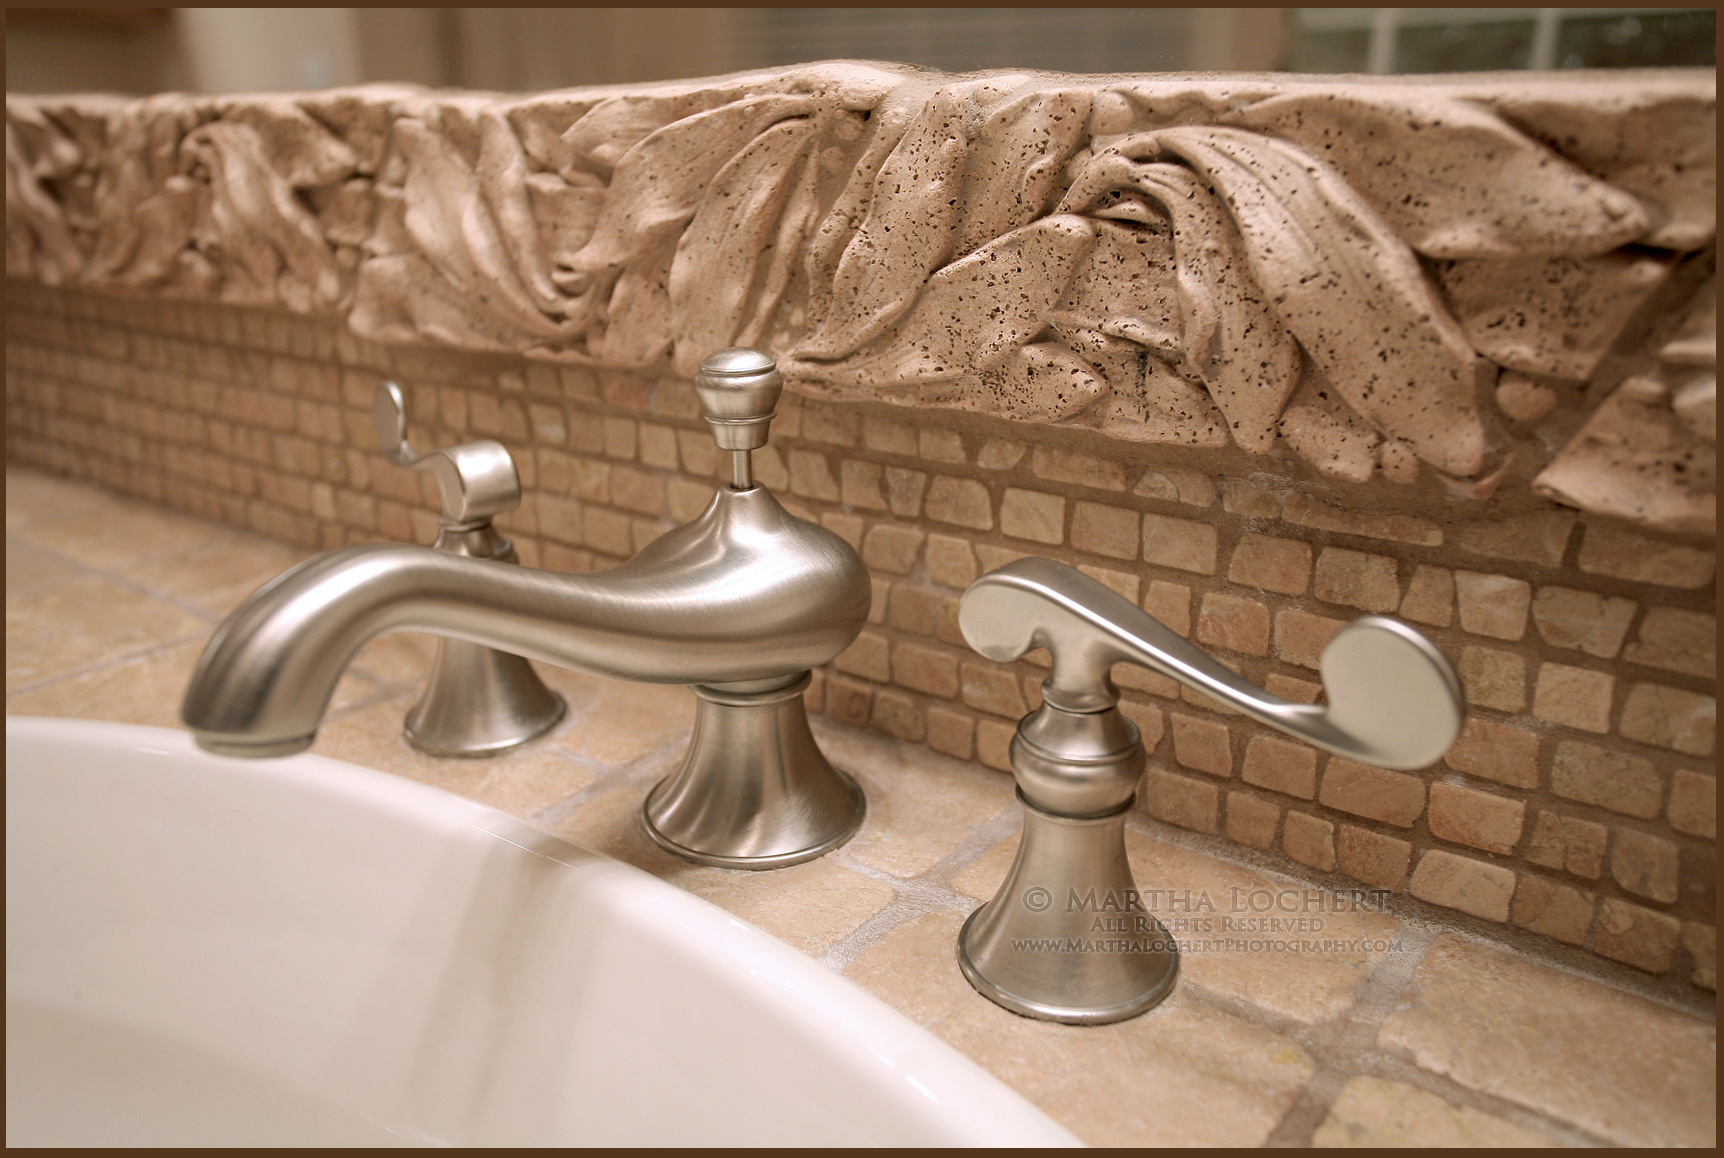 Bathroom faucet as a visual for the importance of washing hands thoroughly and often